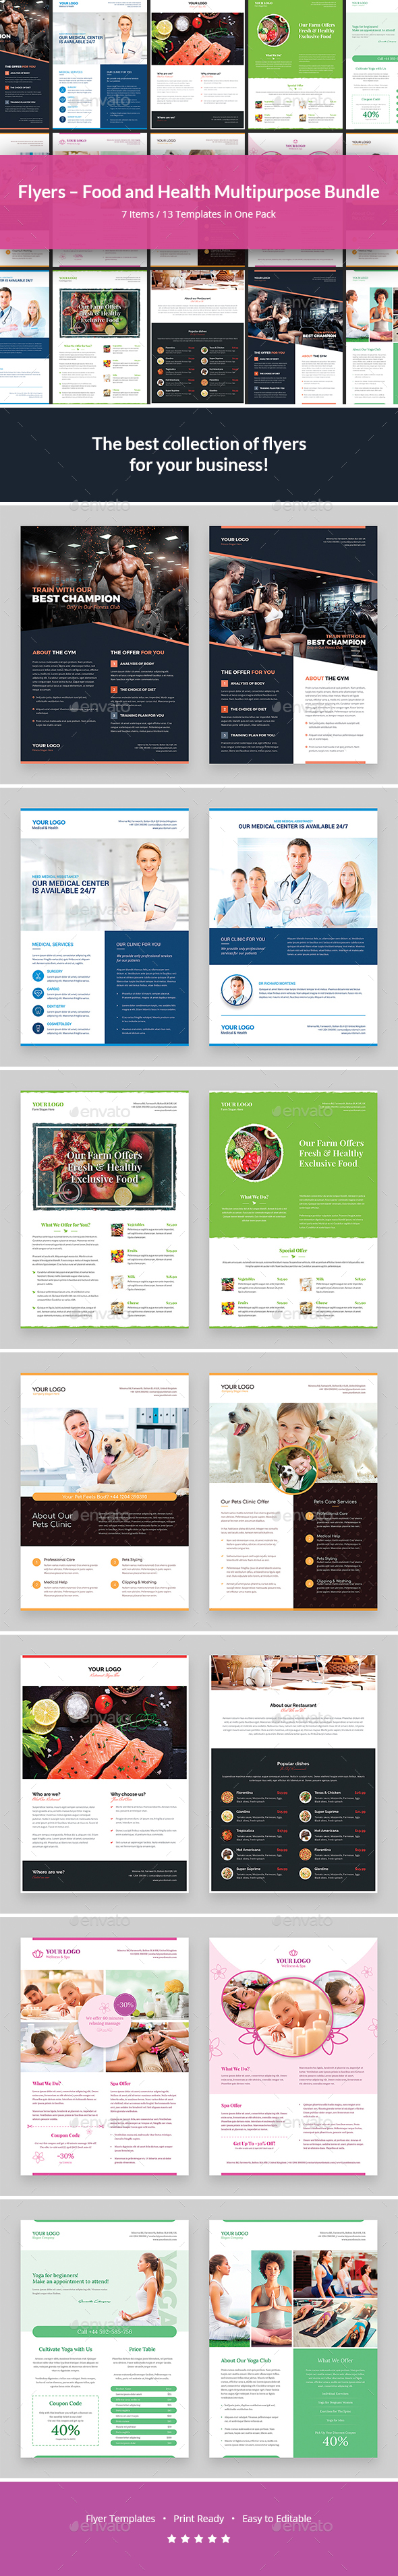 Flyers – Food and Health Multipurpose Bundle 7 in 1 - Corporate Flyers